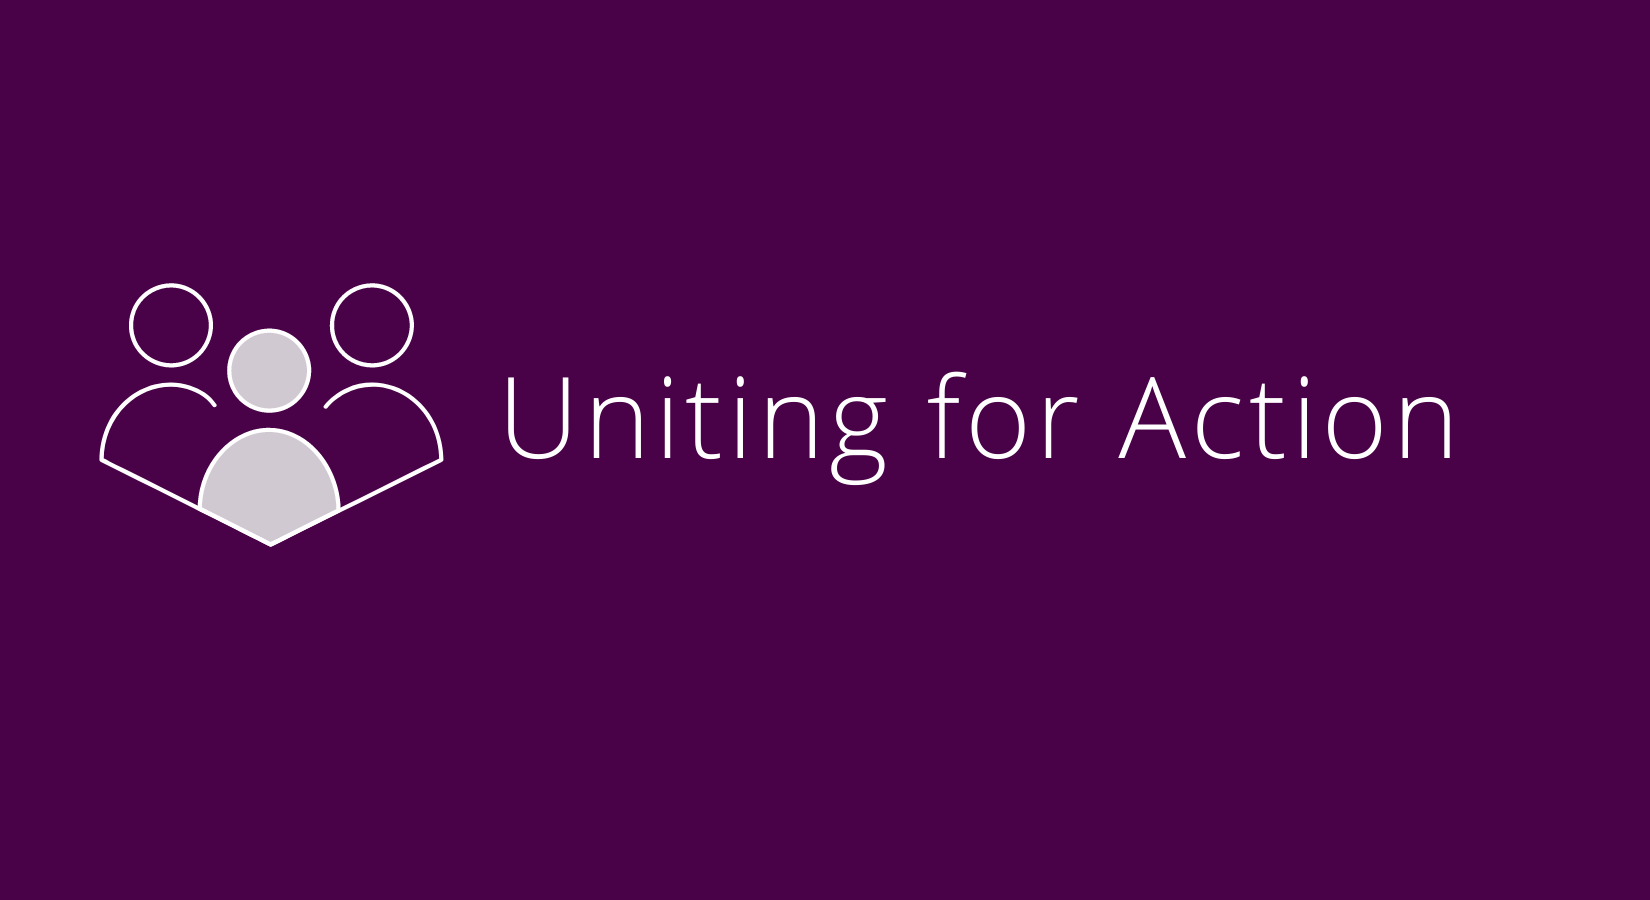 Uniting for Action